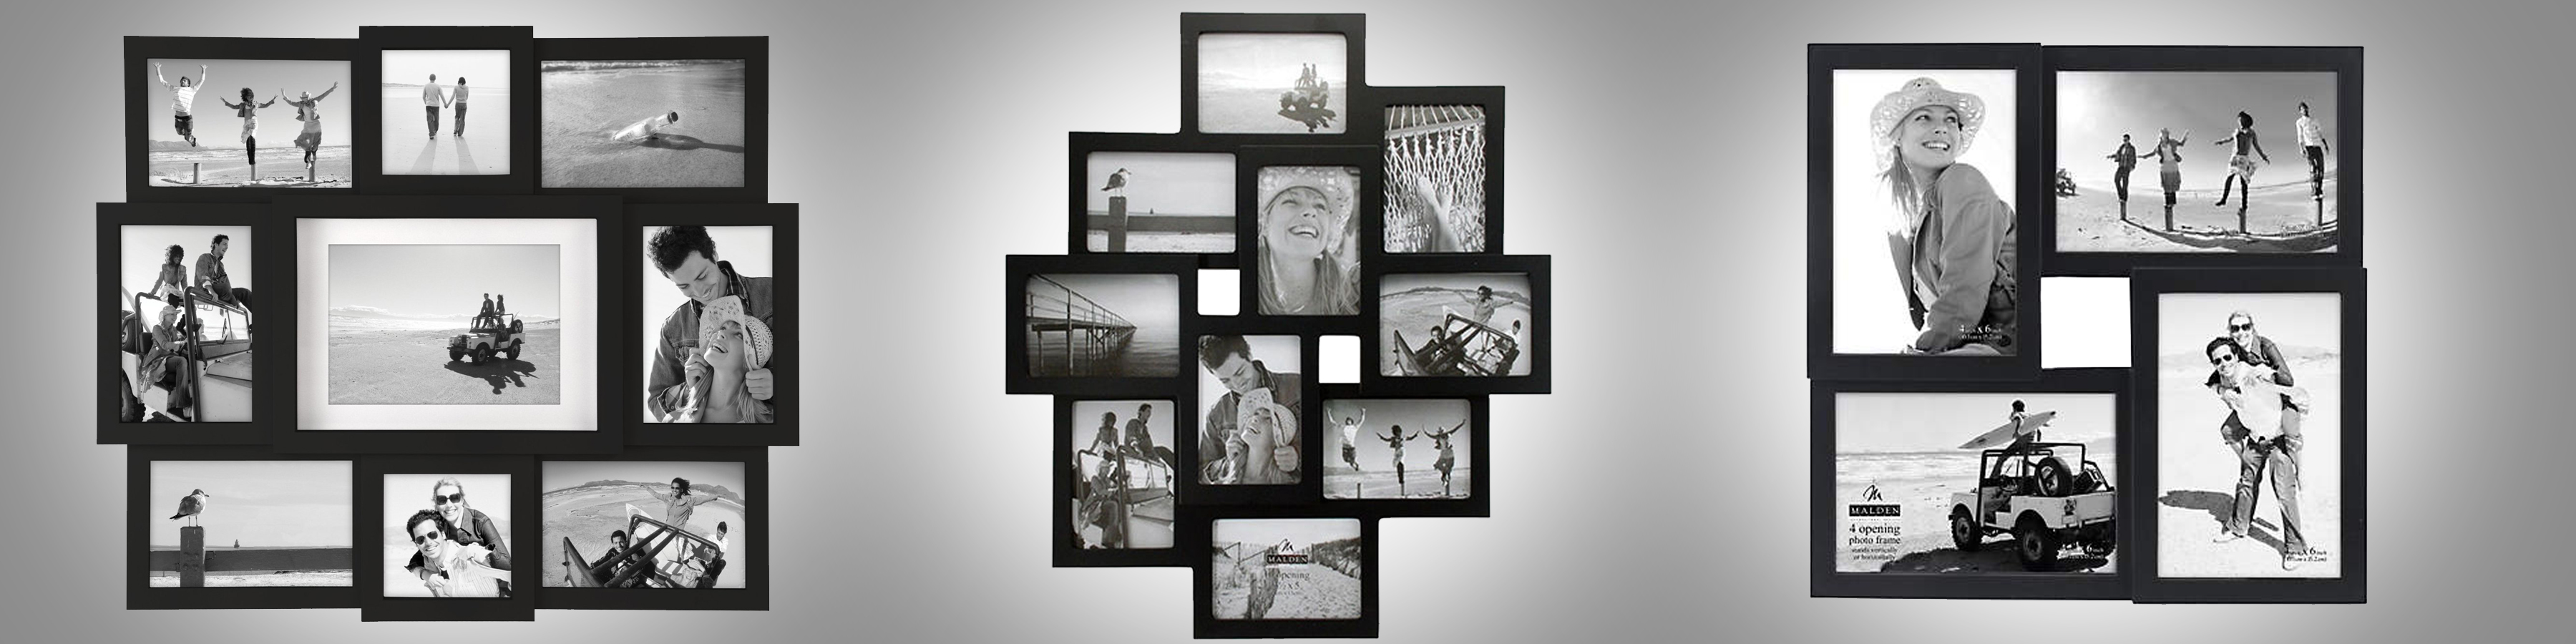 Tradition style black collage frames